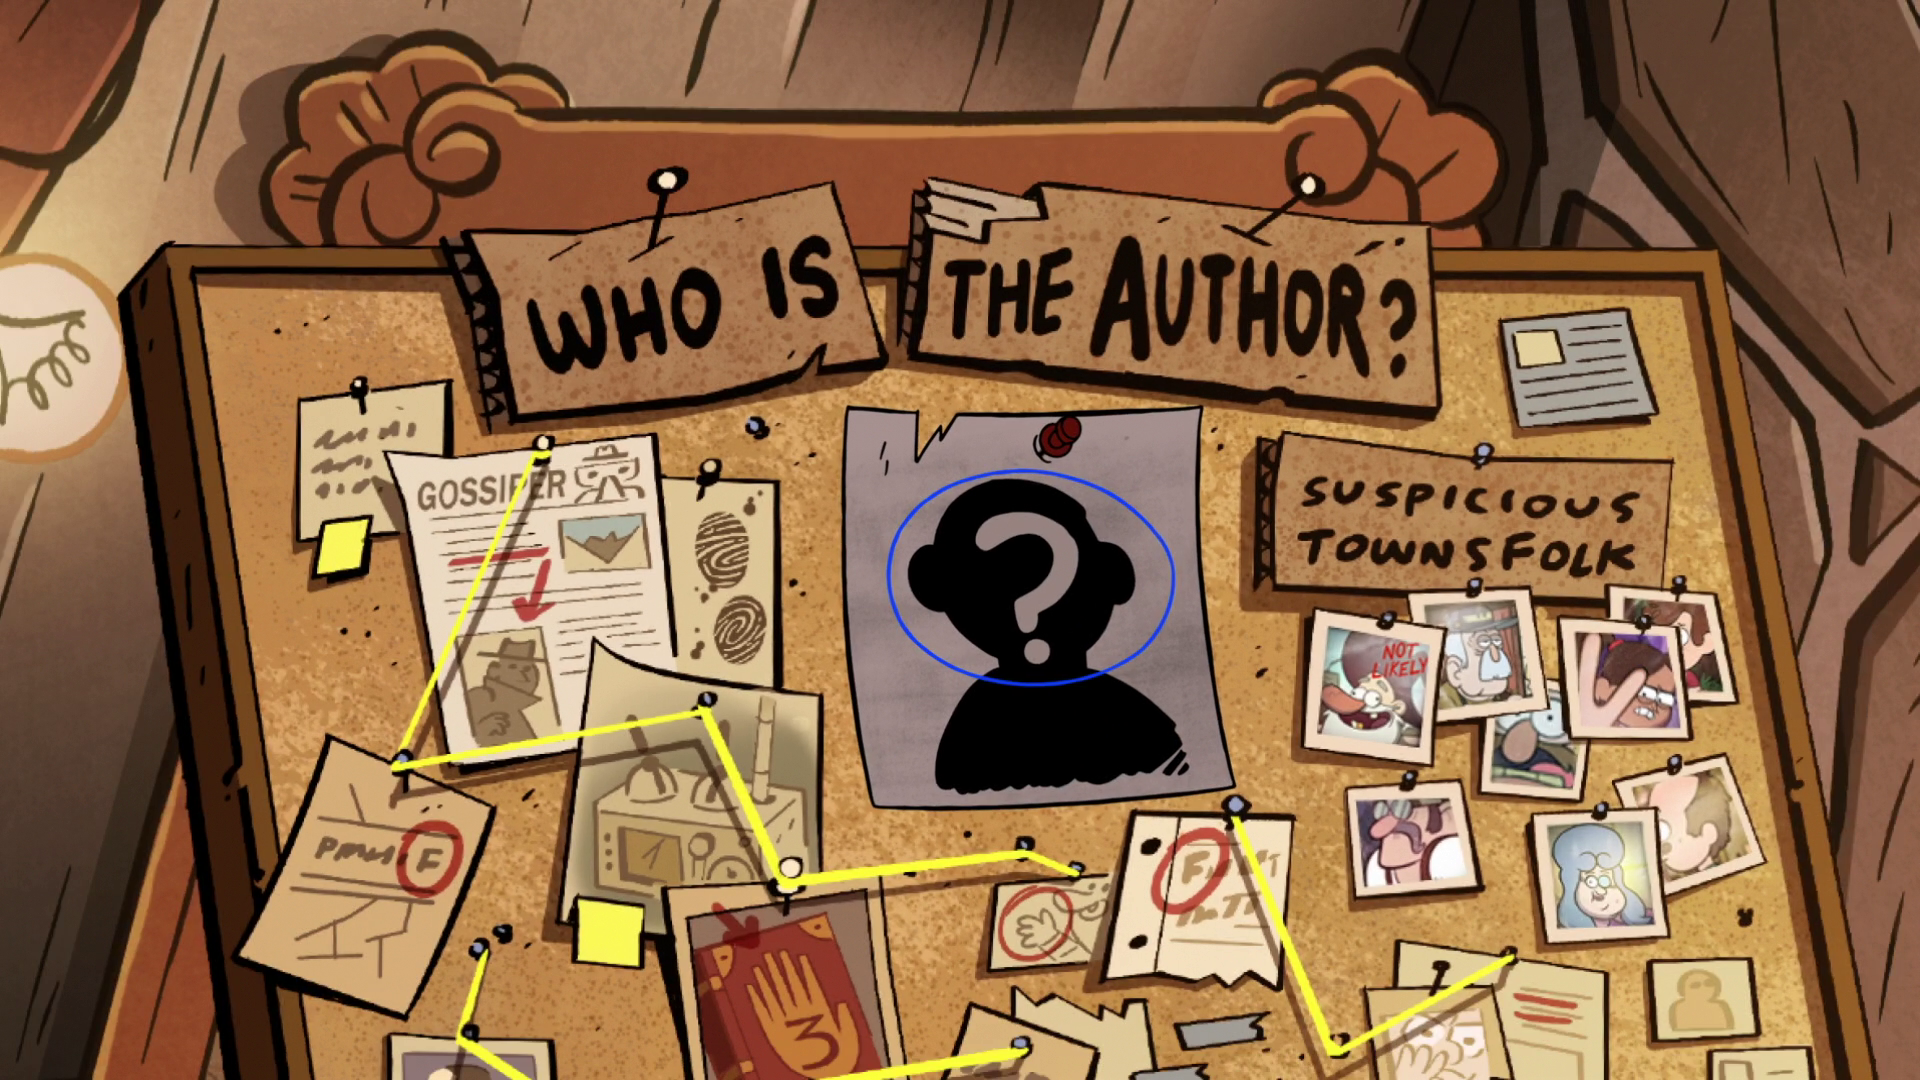 Who is the author 75